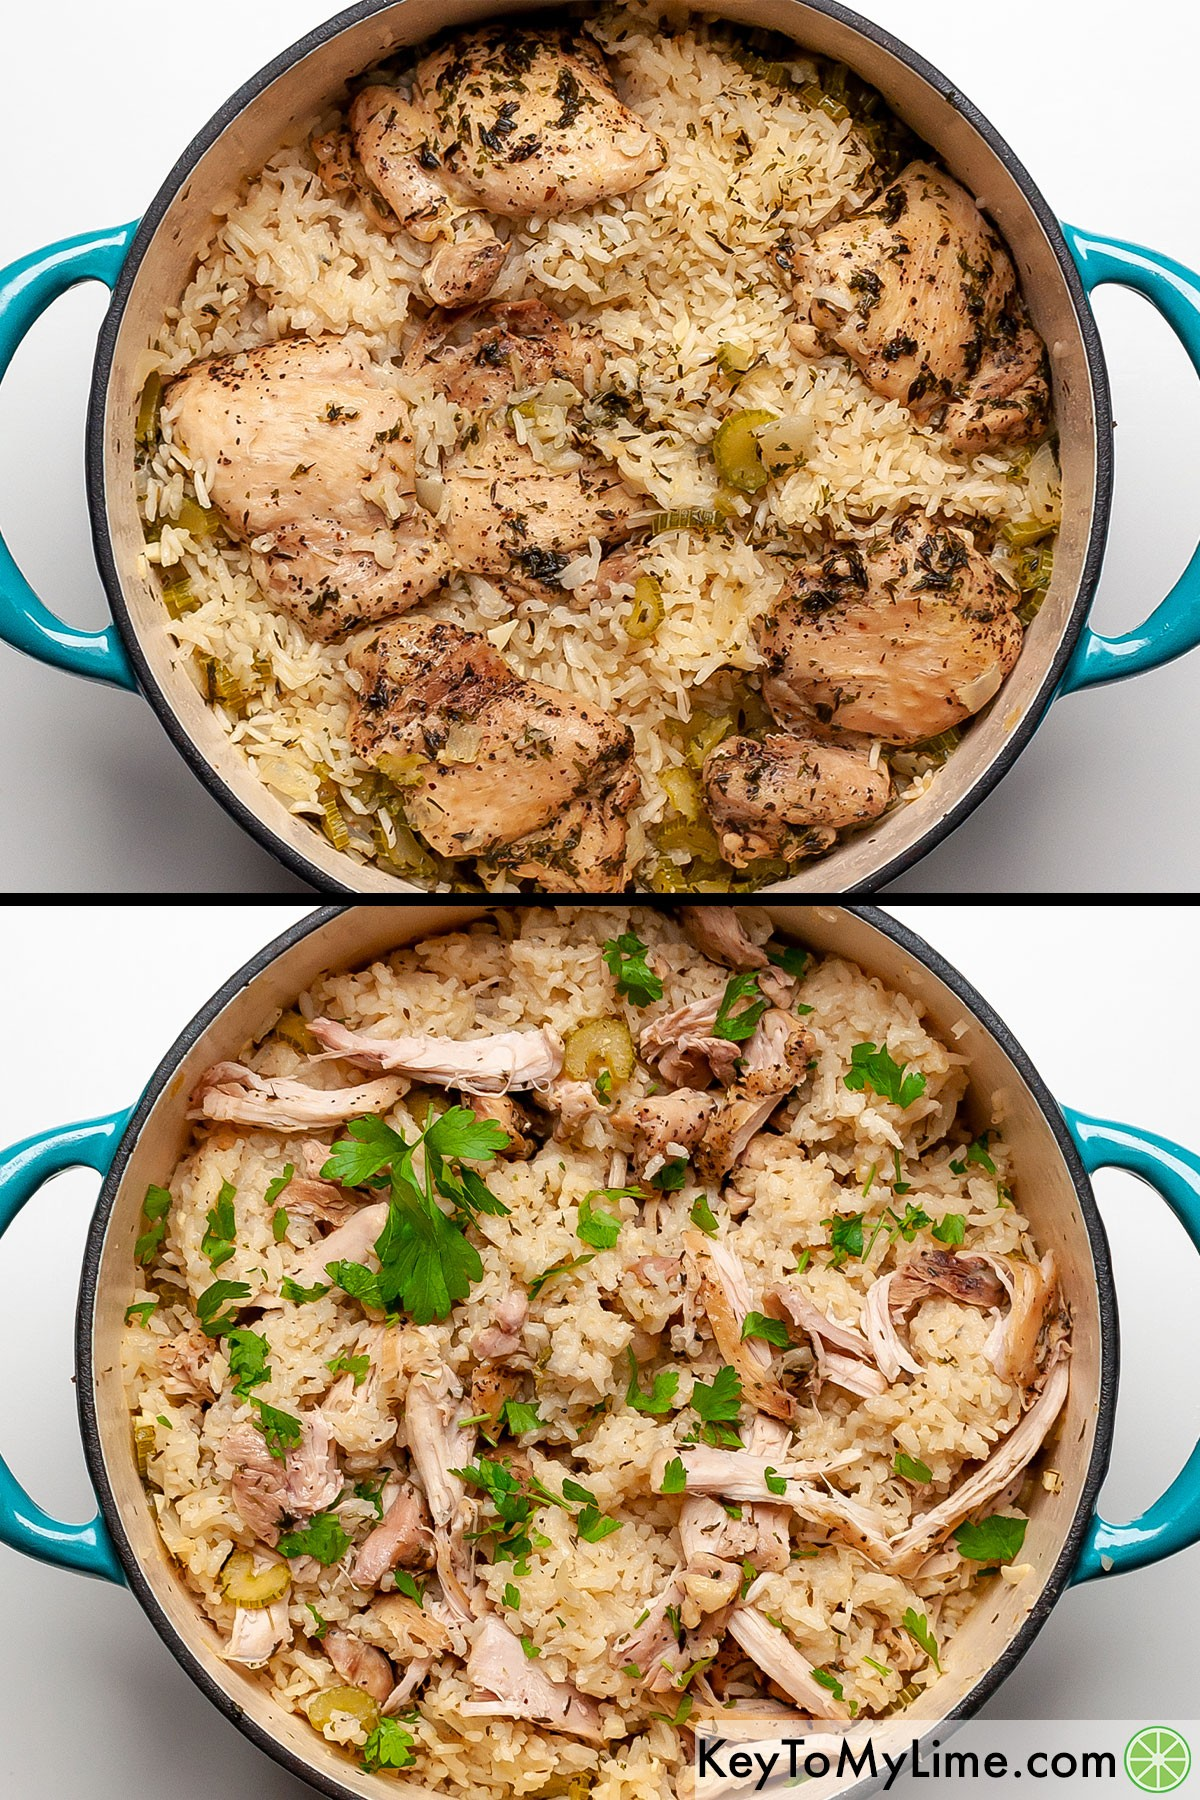 Chicken and rice before and after shredding the chicken and fluffing the rice.